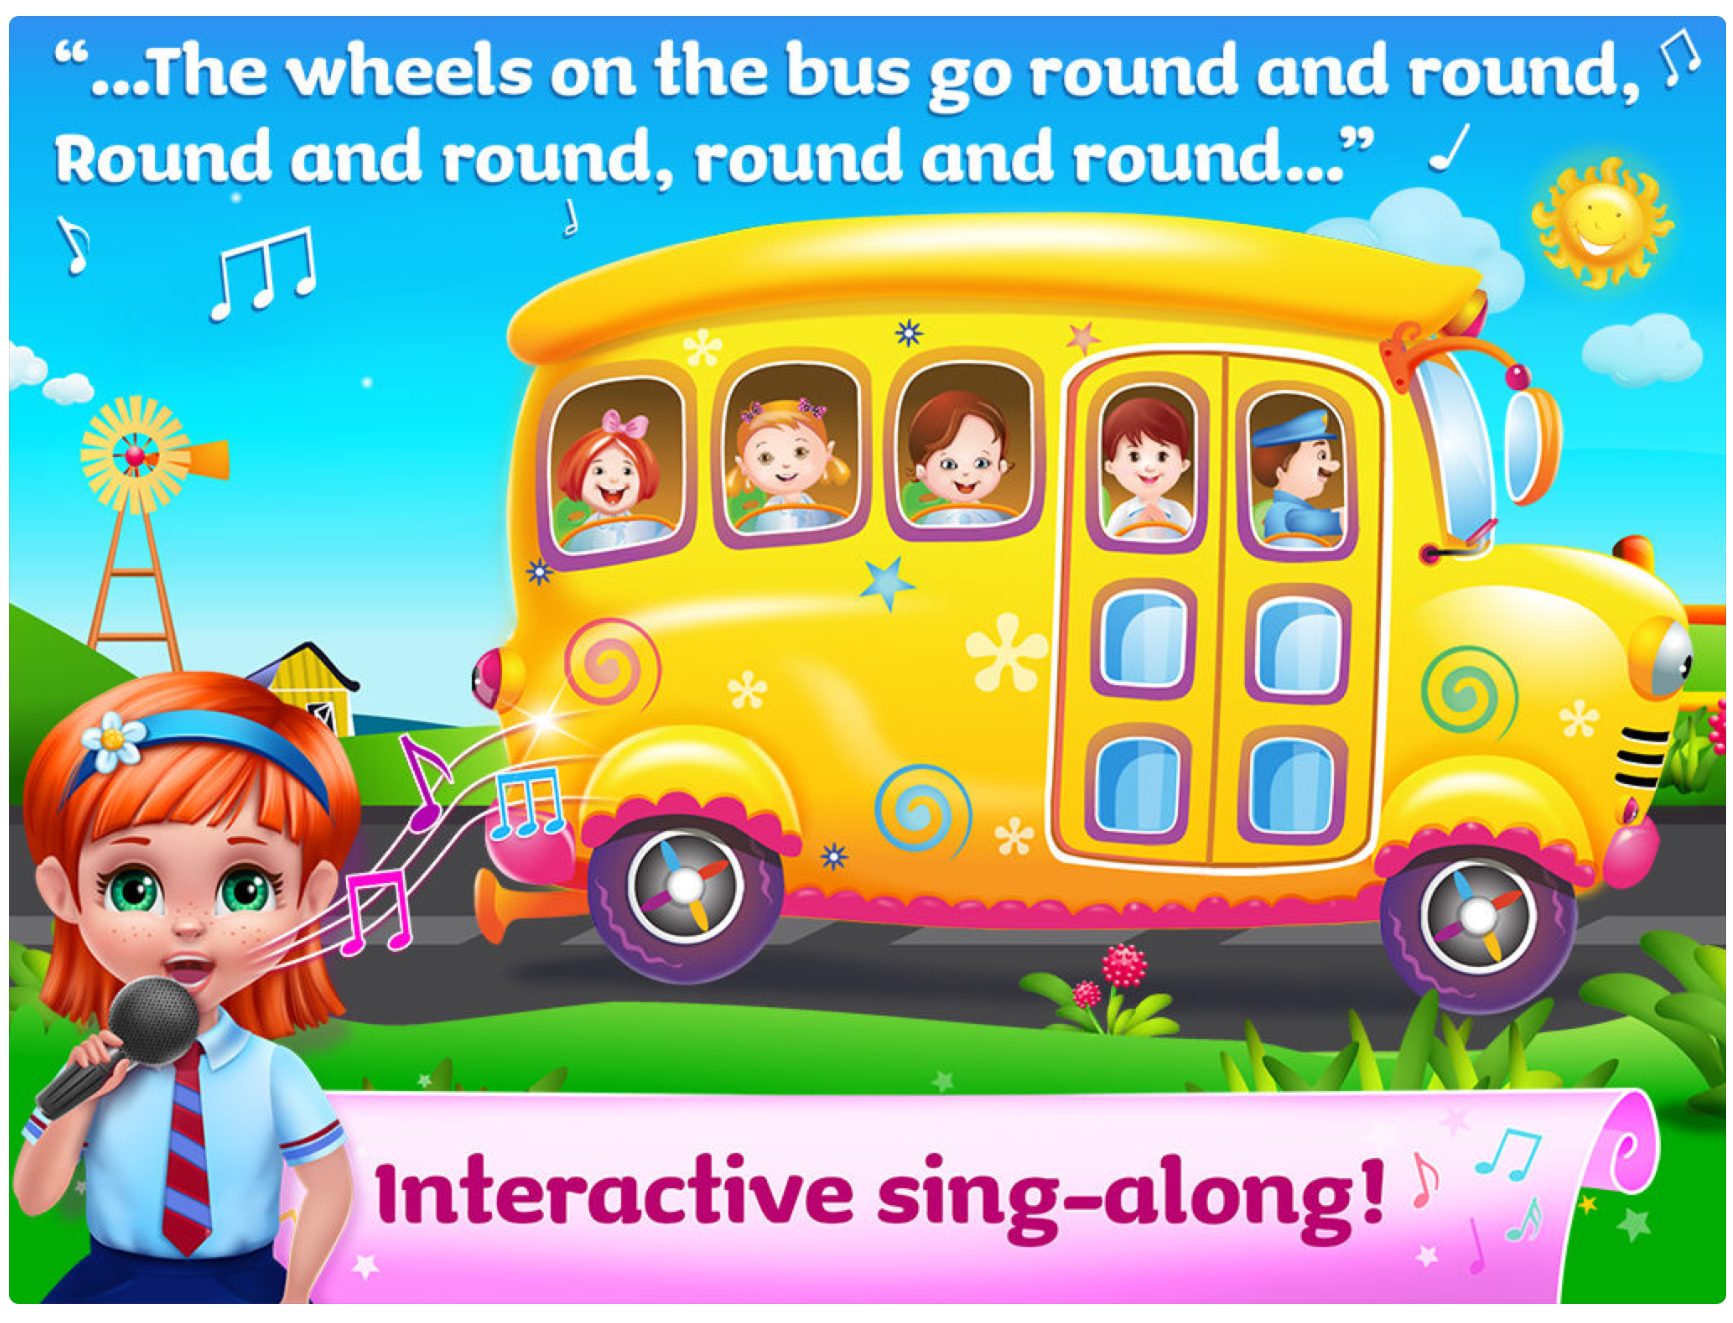 The wheels on the bus app